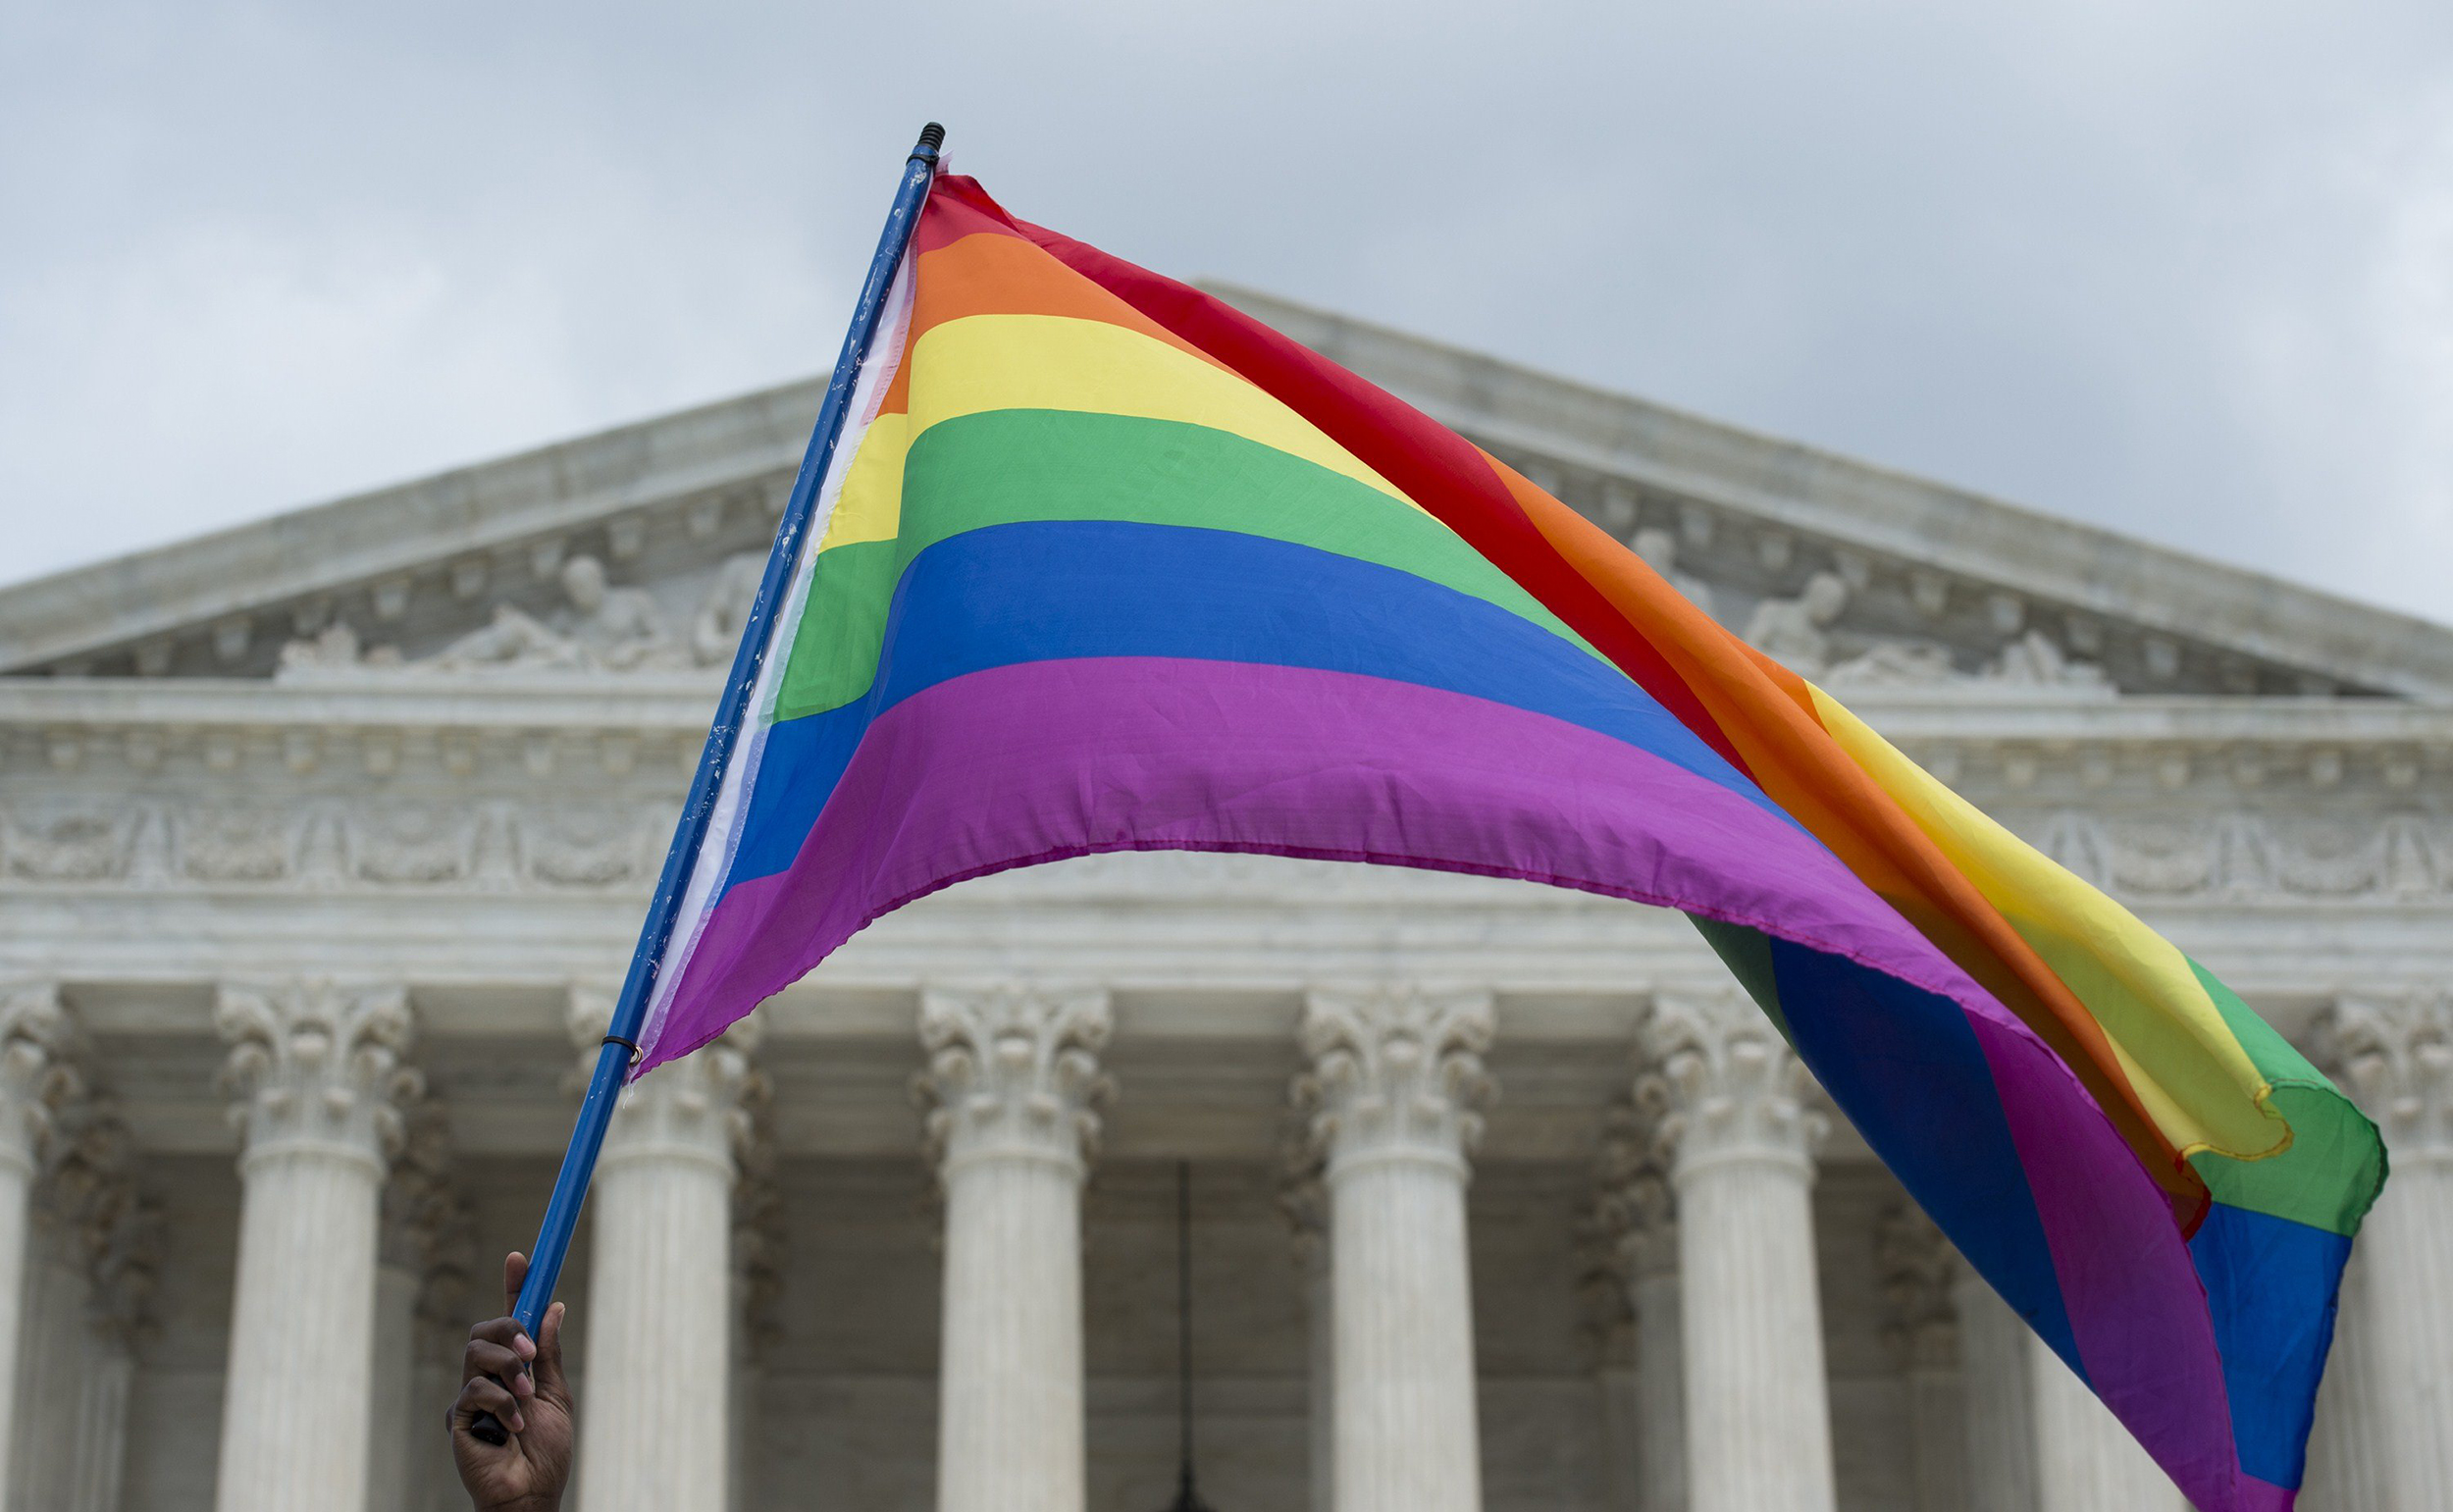 Gay workers not covered by civil rights law, Trump admin tells Supreme Court